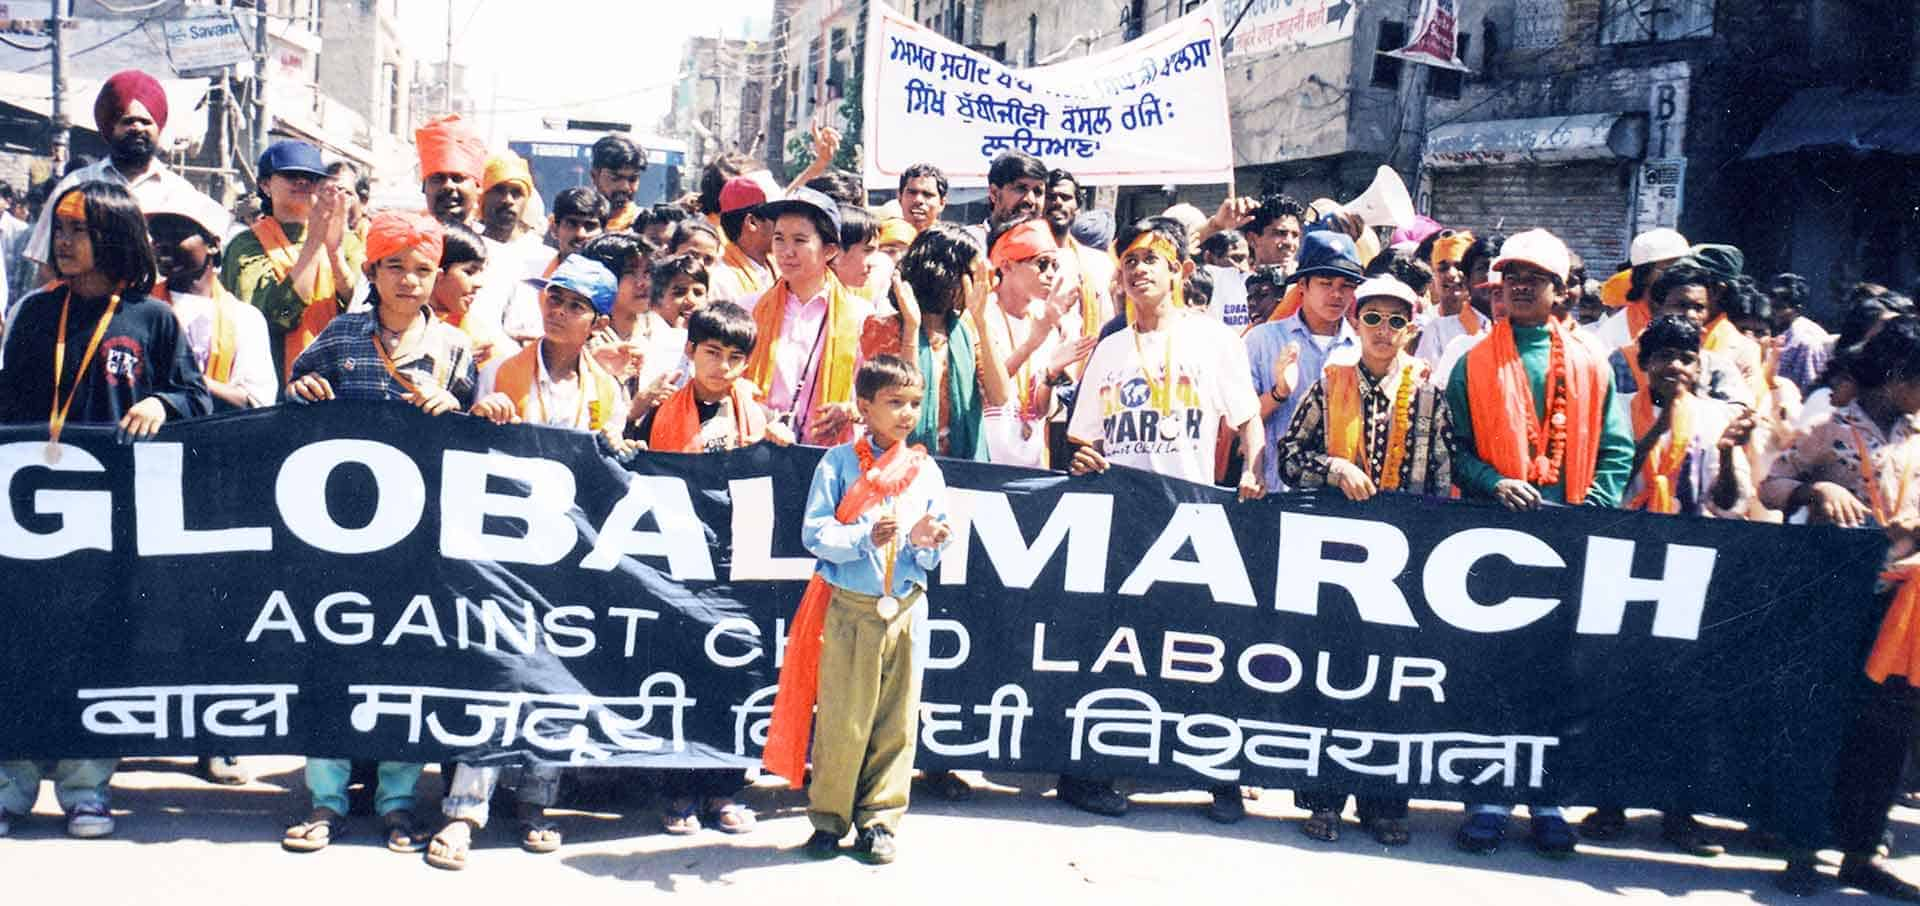 Introducing our Holiday Season charity - Global March Against Child Labour